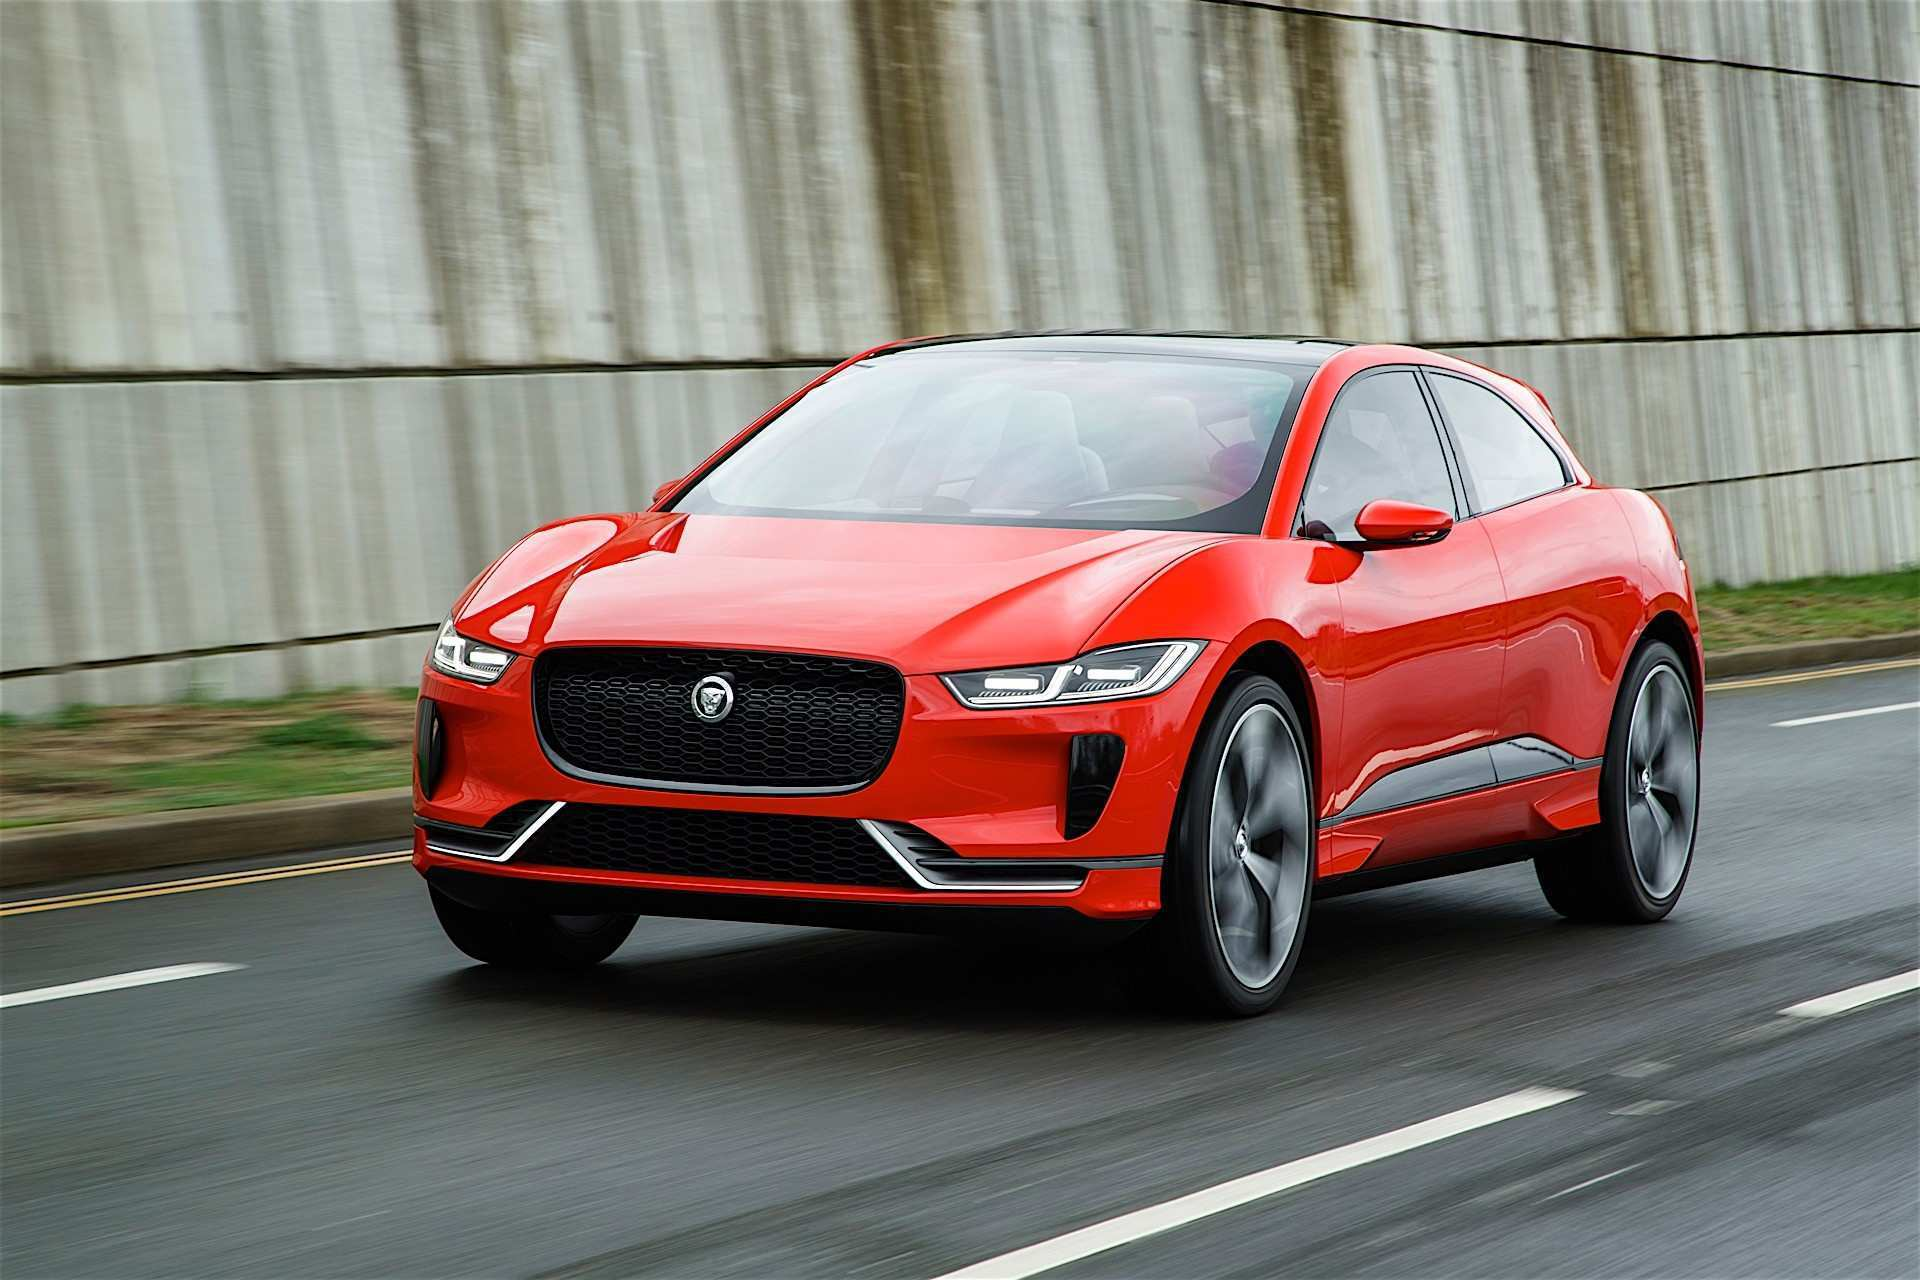 45 New 2019 Jaguar I Pace Price Images